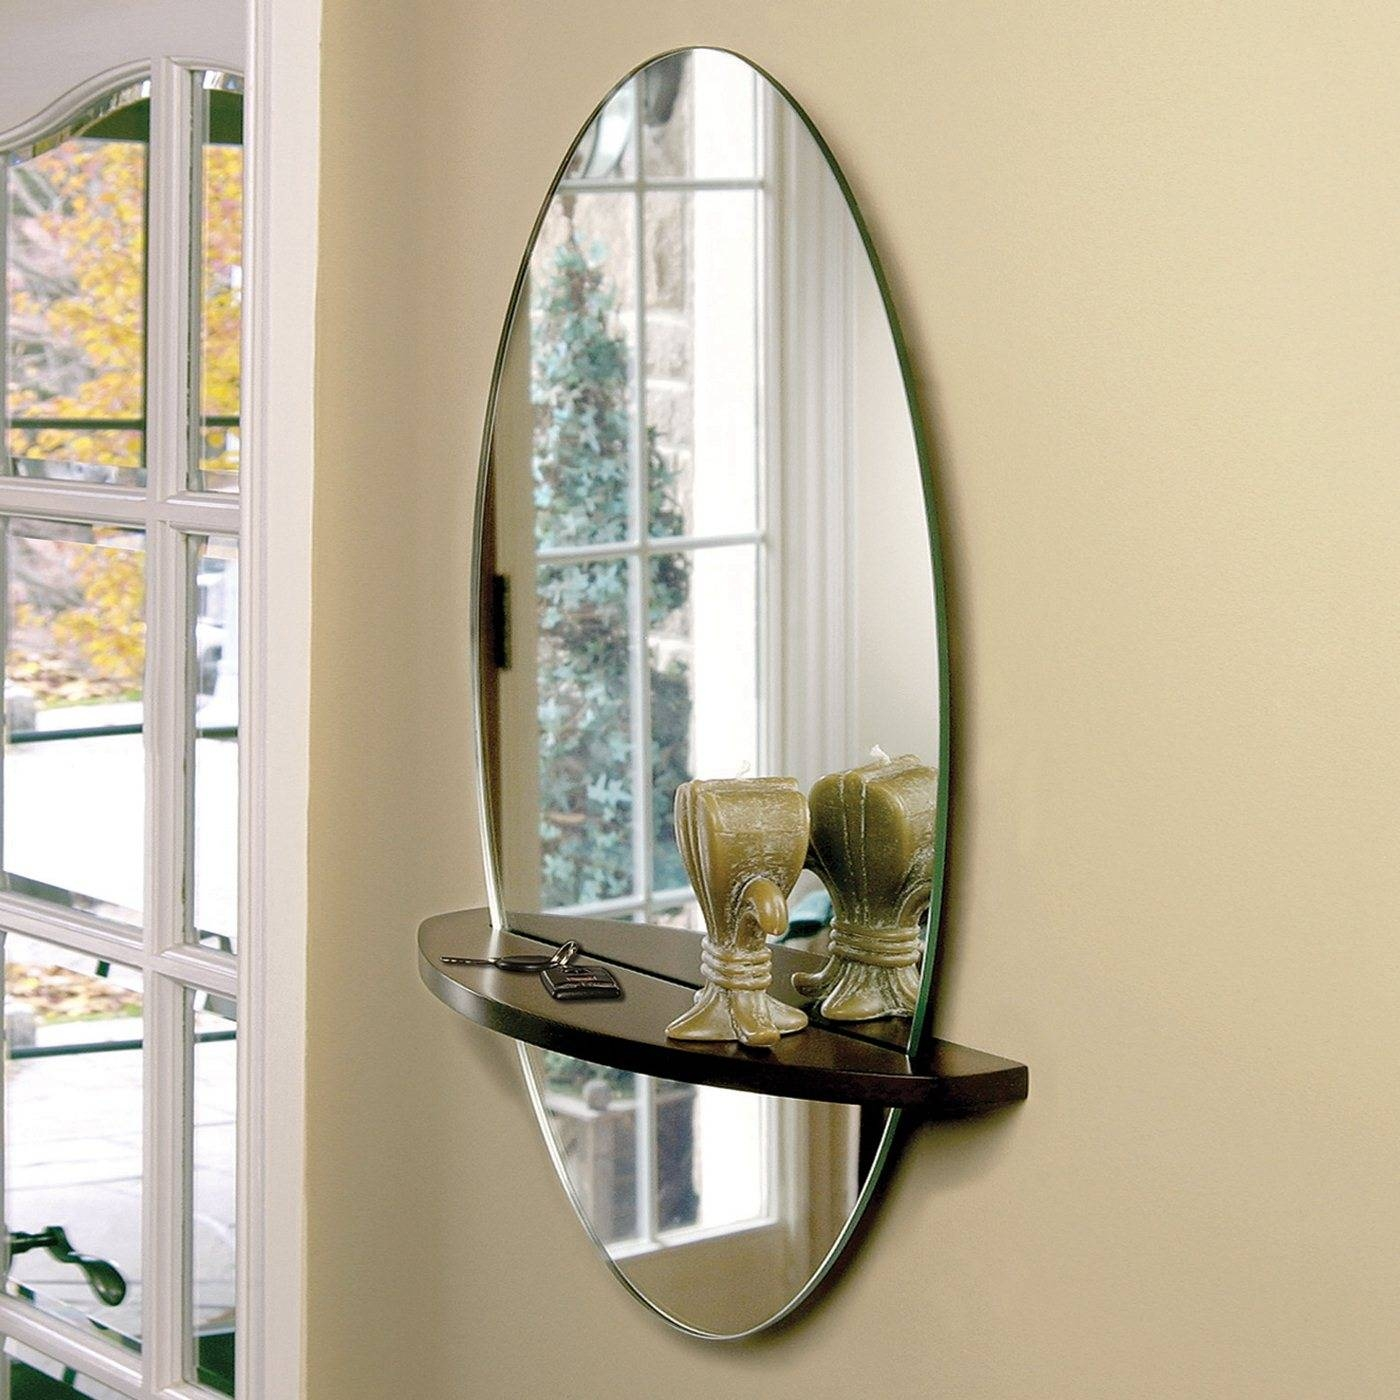 Nexxt Design Reflect Oval Wall Mirror Atg Stores – Dma Homes | #89256 In Modern Contemporary Wall Mirrors (View 9 of 15)